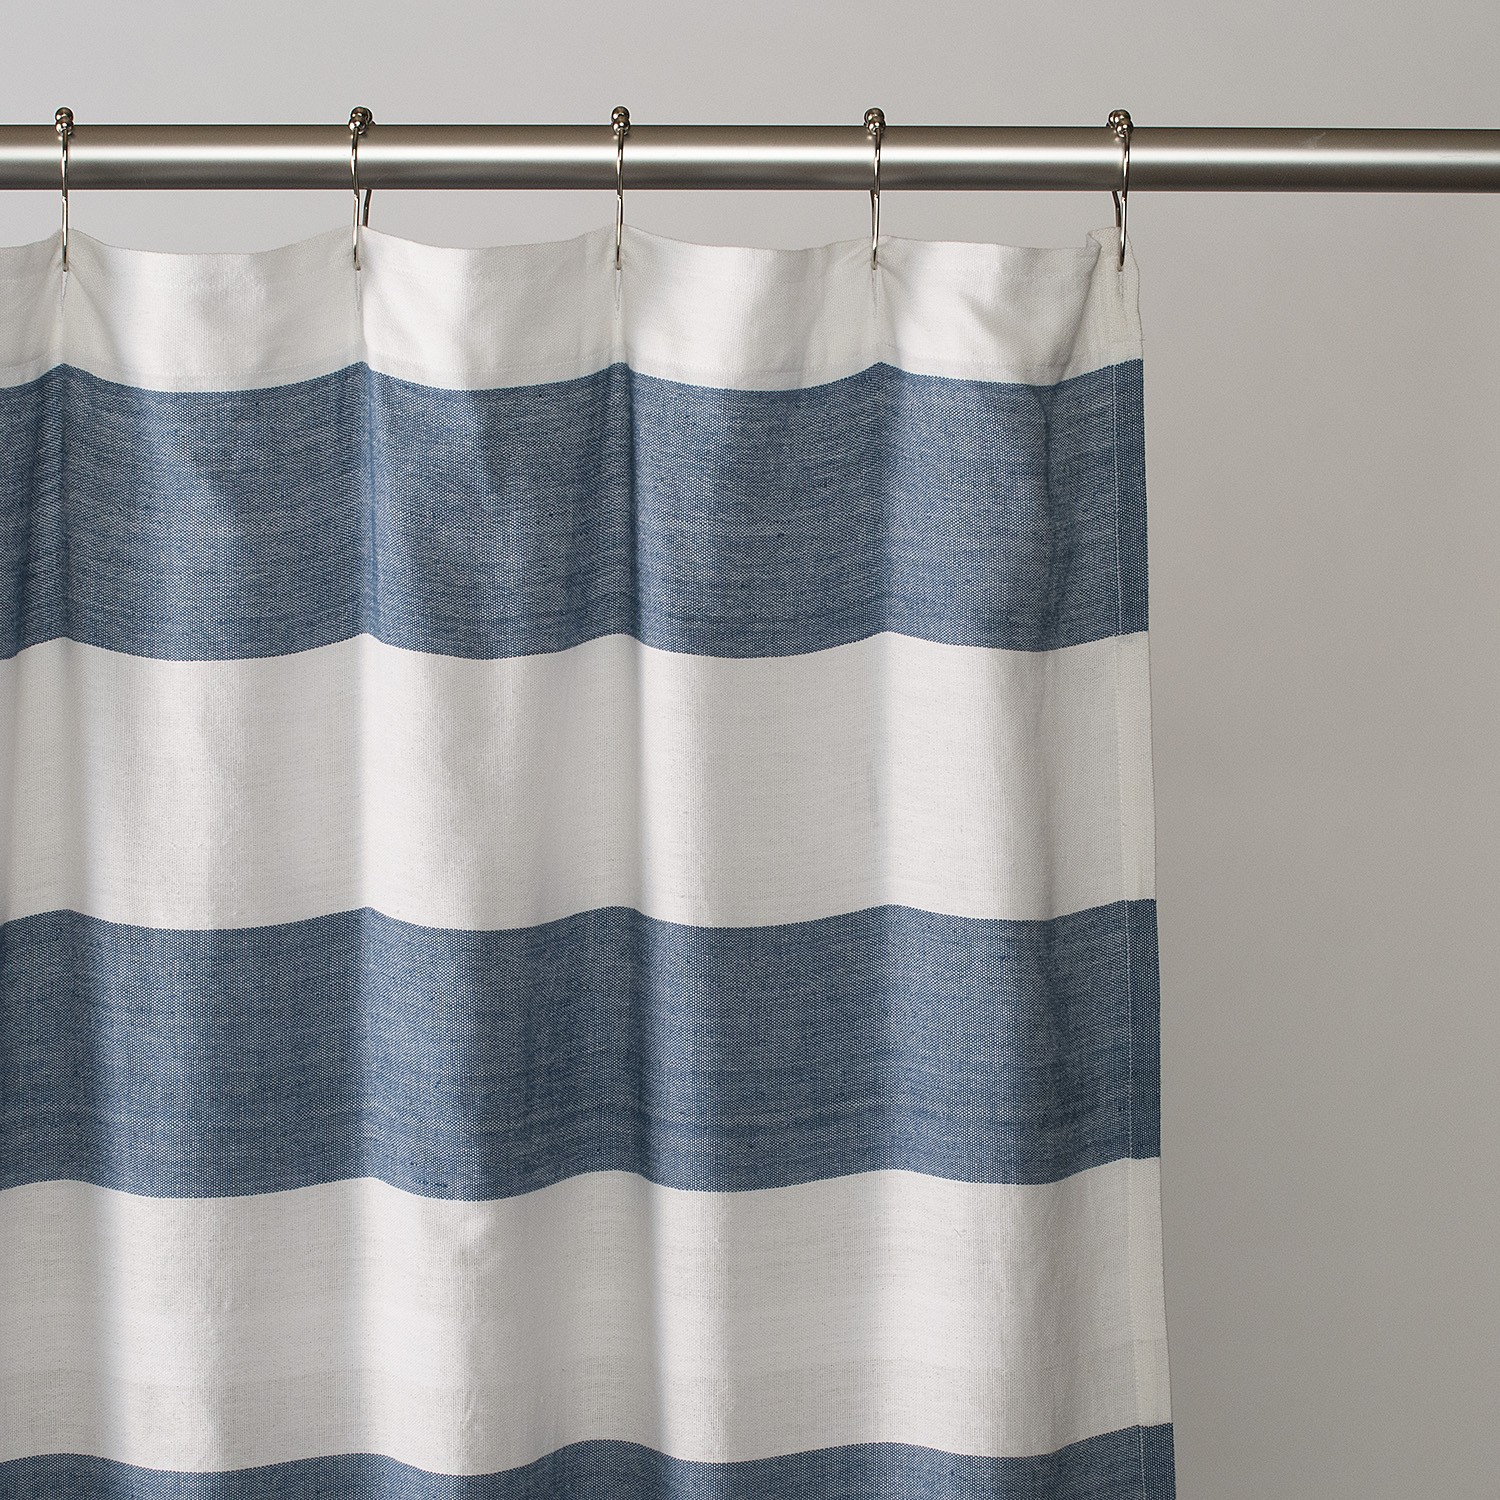 Fashionable Striped Shower Curtain The Homy Design for sizing 1500 X 1500